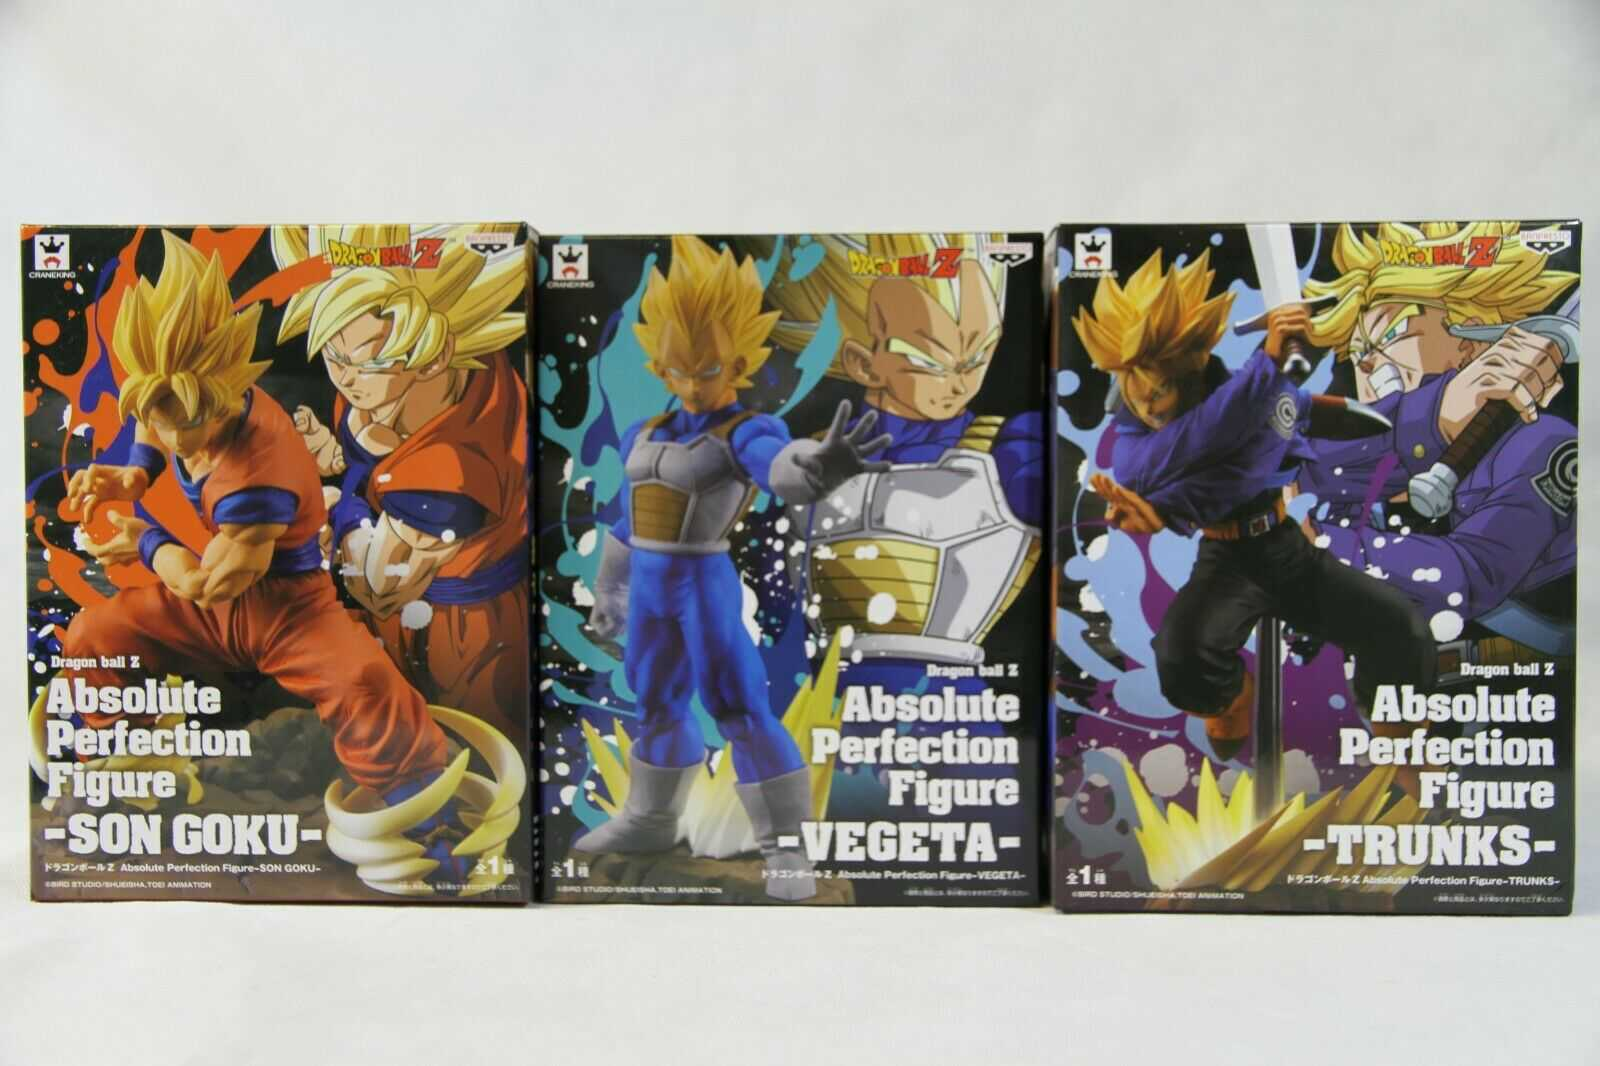 Conjunto Absolute Perfection Figure Trunks Goku e Vegeta - Banpresto